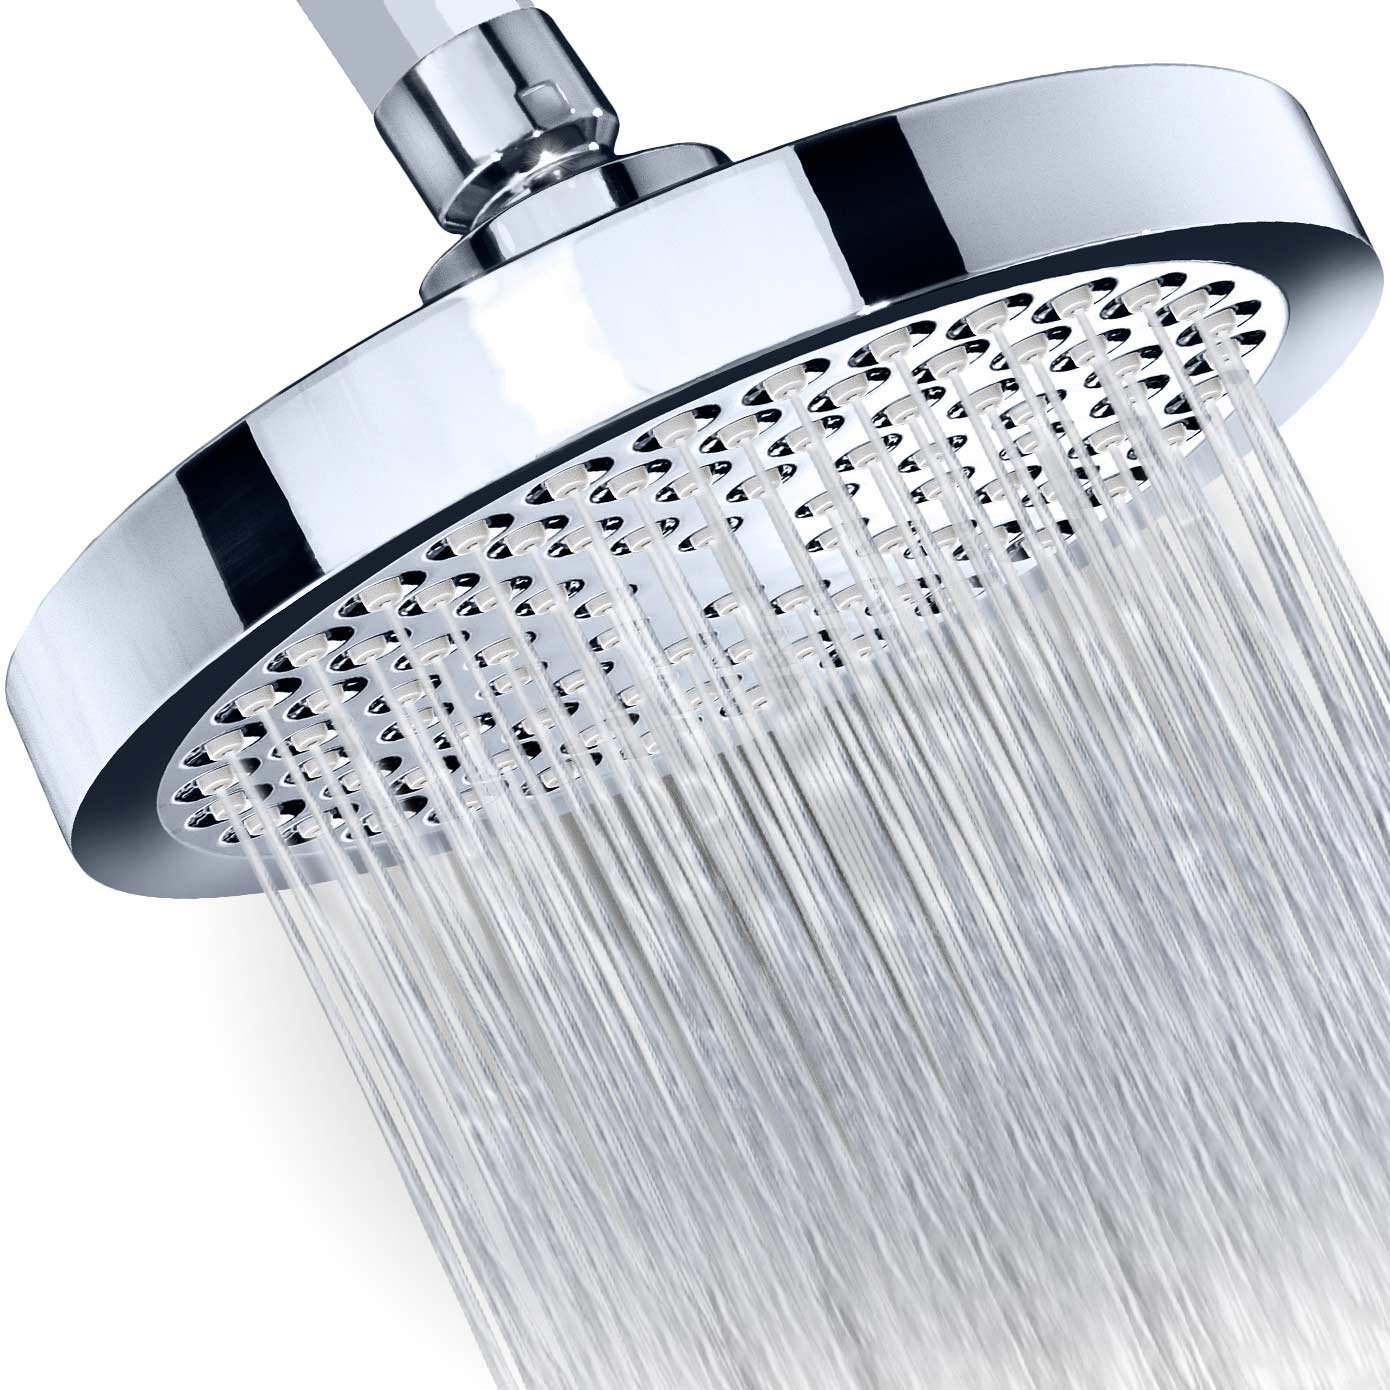 """Shower Head - LIMITED TIME SALE - Rainfall High Pressure 6"""" - Rain High Flow Fixed Luxury Chrome Showerhead - Removable Water Restrictor - For the Best Relaxation and Spa"""